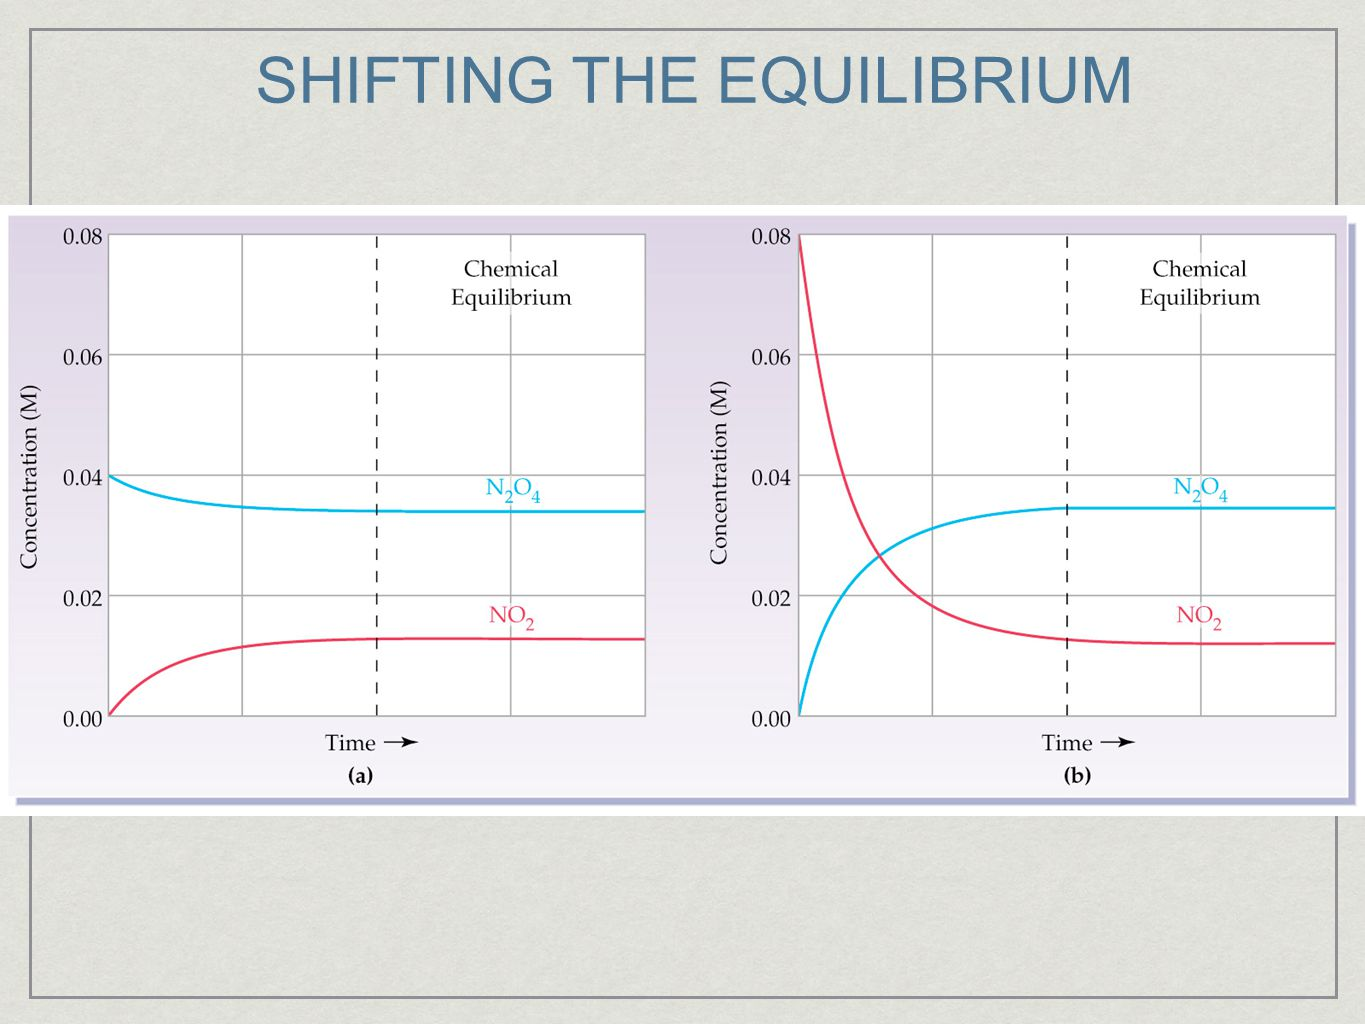 SHIFTING THE EQUILIBRIUM